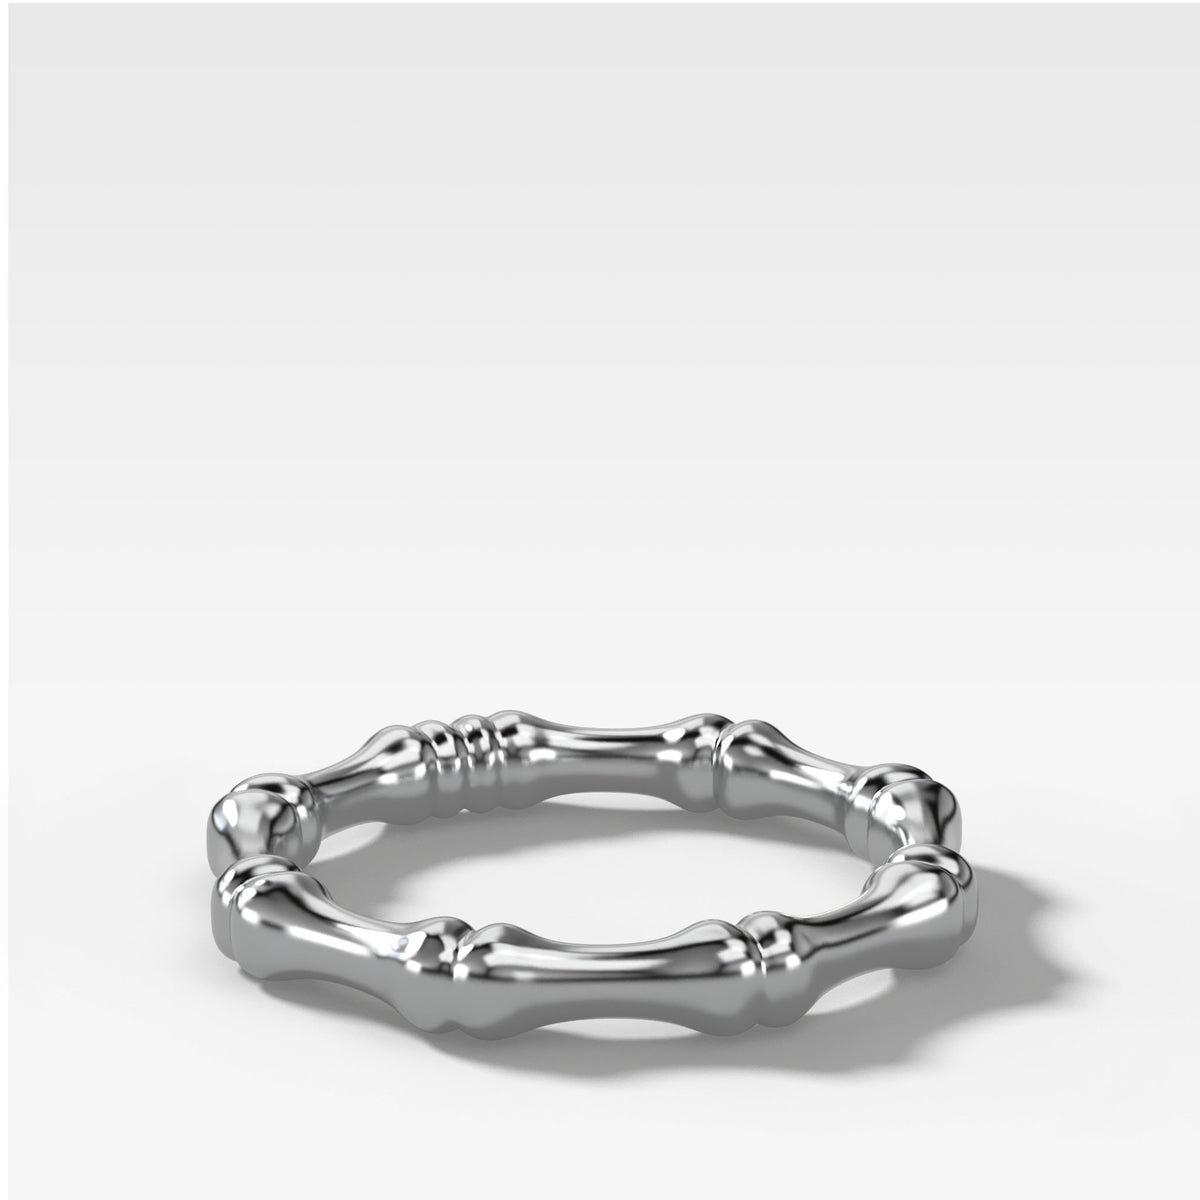 Bare Bones Stacker (3mm) Band in White Gold by Good Stone